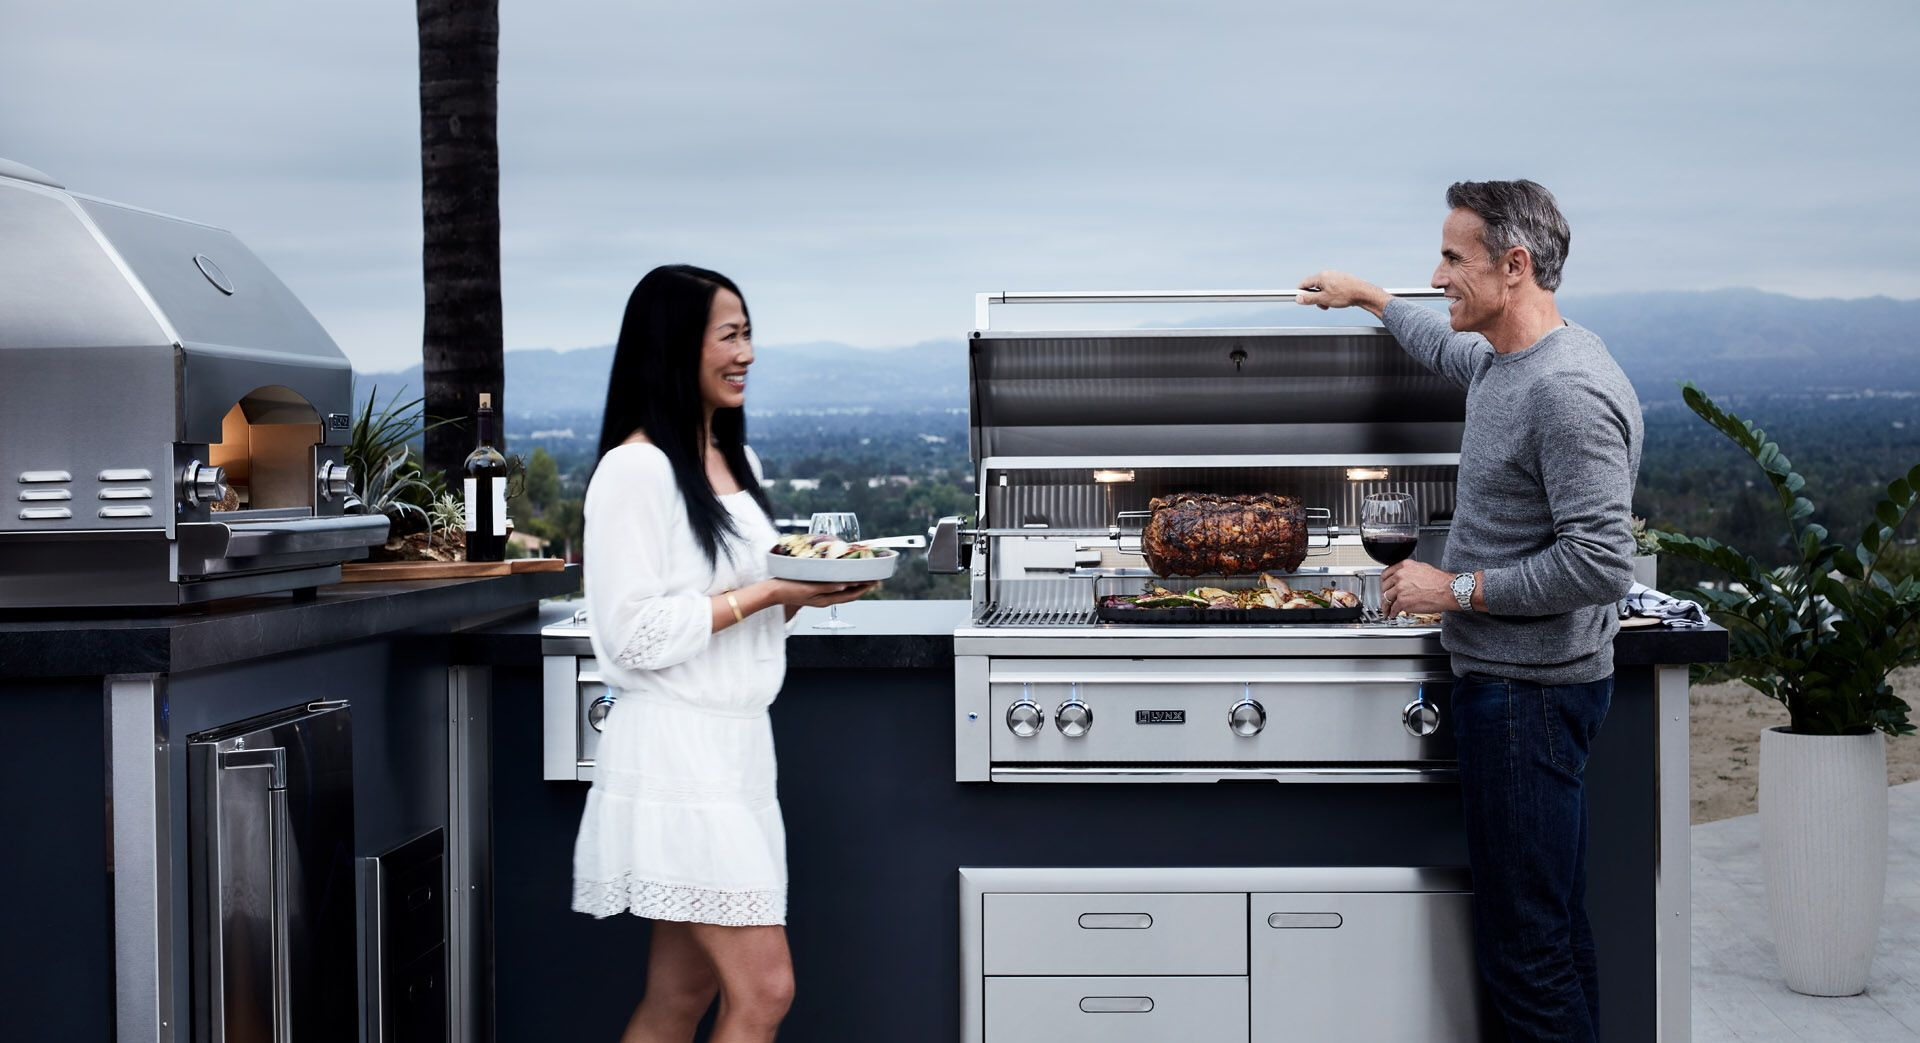 Ask Us About The Lynx Professional Lineup Outdoorentertainment Outdoorgrills Outdoorkitchens Outdoorliving Outdoor Kitchen Outdoor Appliances Patio Style